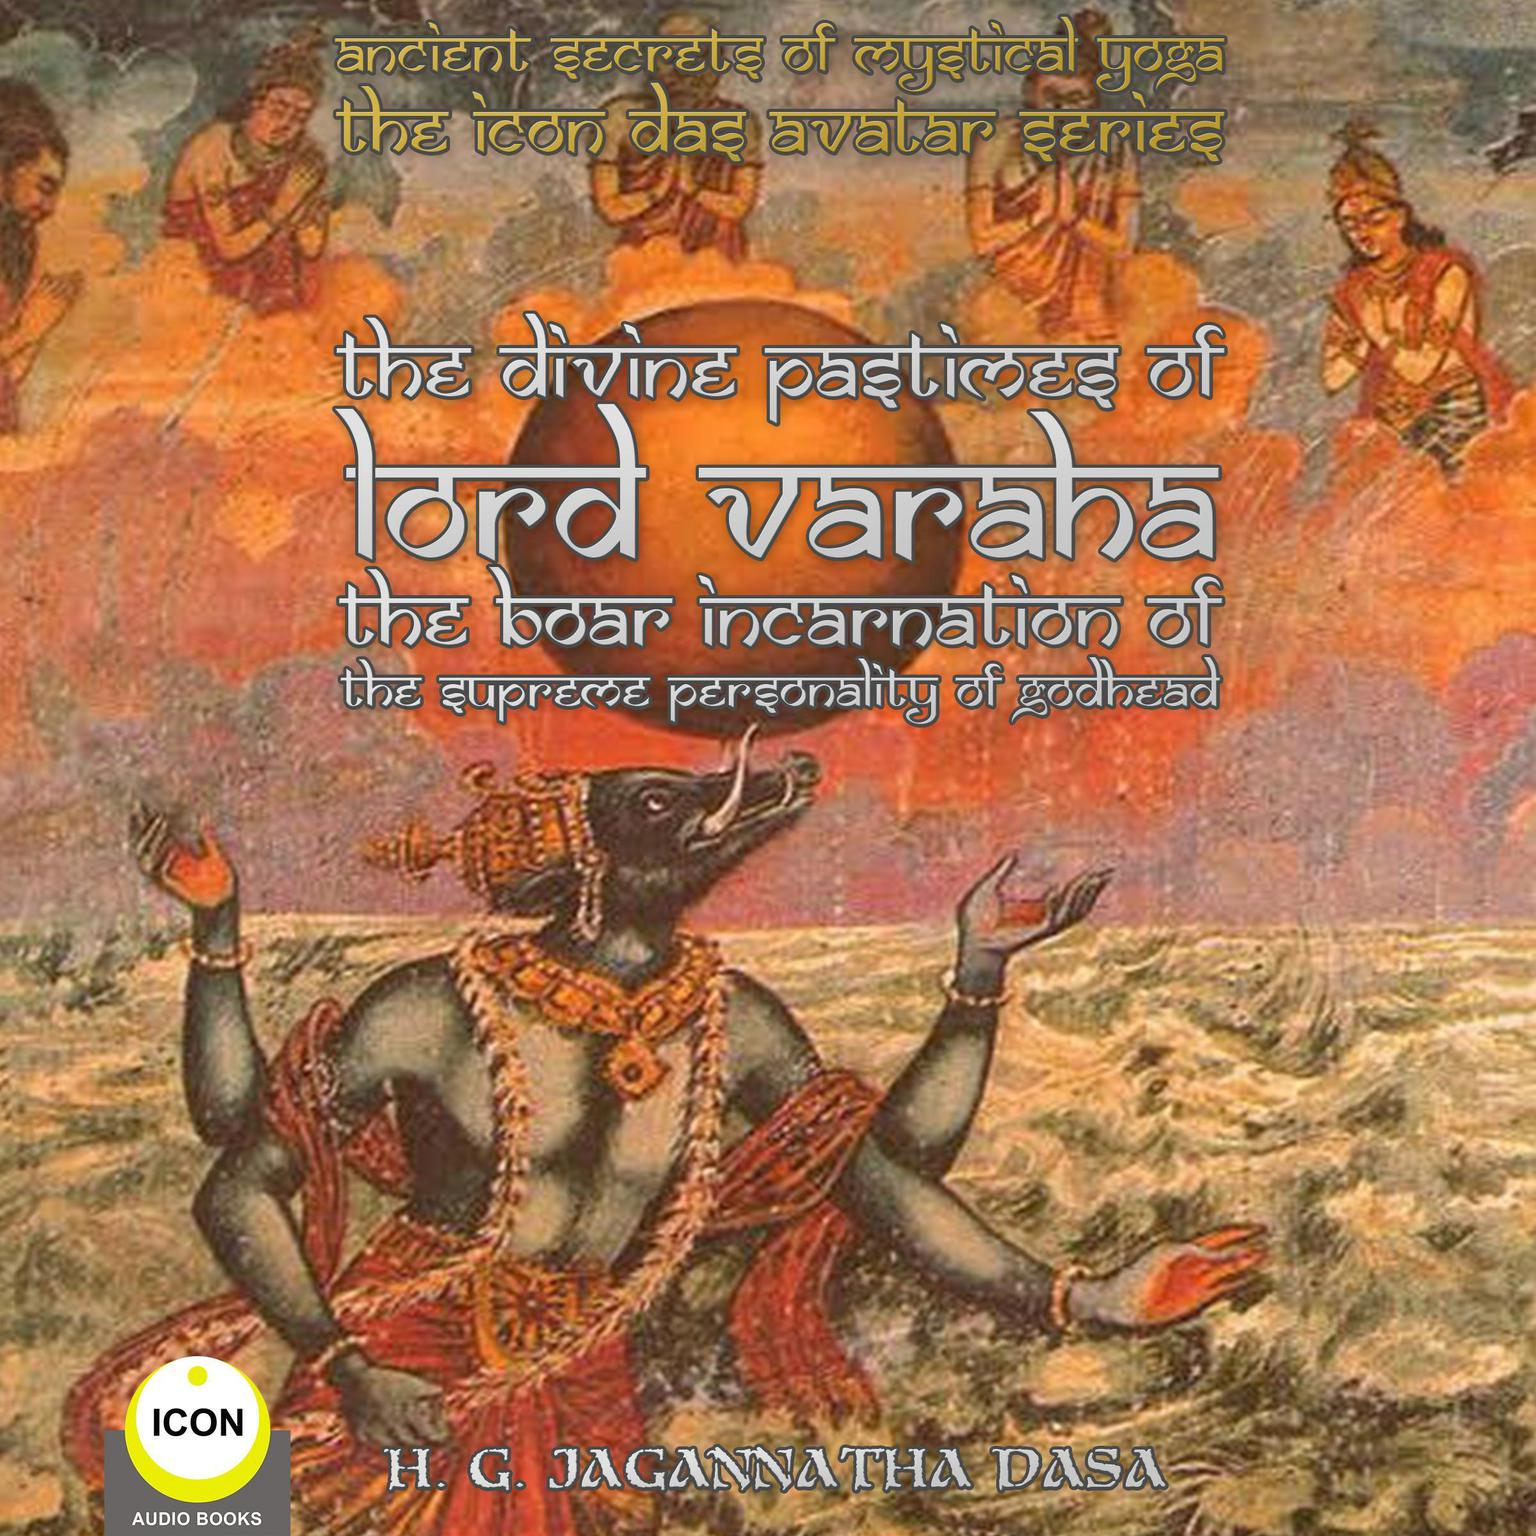 Printable Ancient Secrets of Mystical Yoga : The Icon Das Avatar Series: The Divine Pastimes Of Lord Varaha - The Boar Incarnation Of The Supreme Personality Of Godhead. Audiobook Cover Art